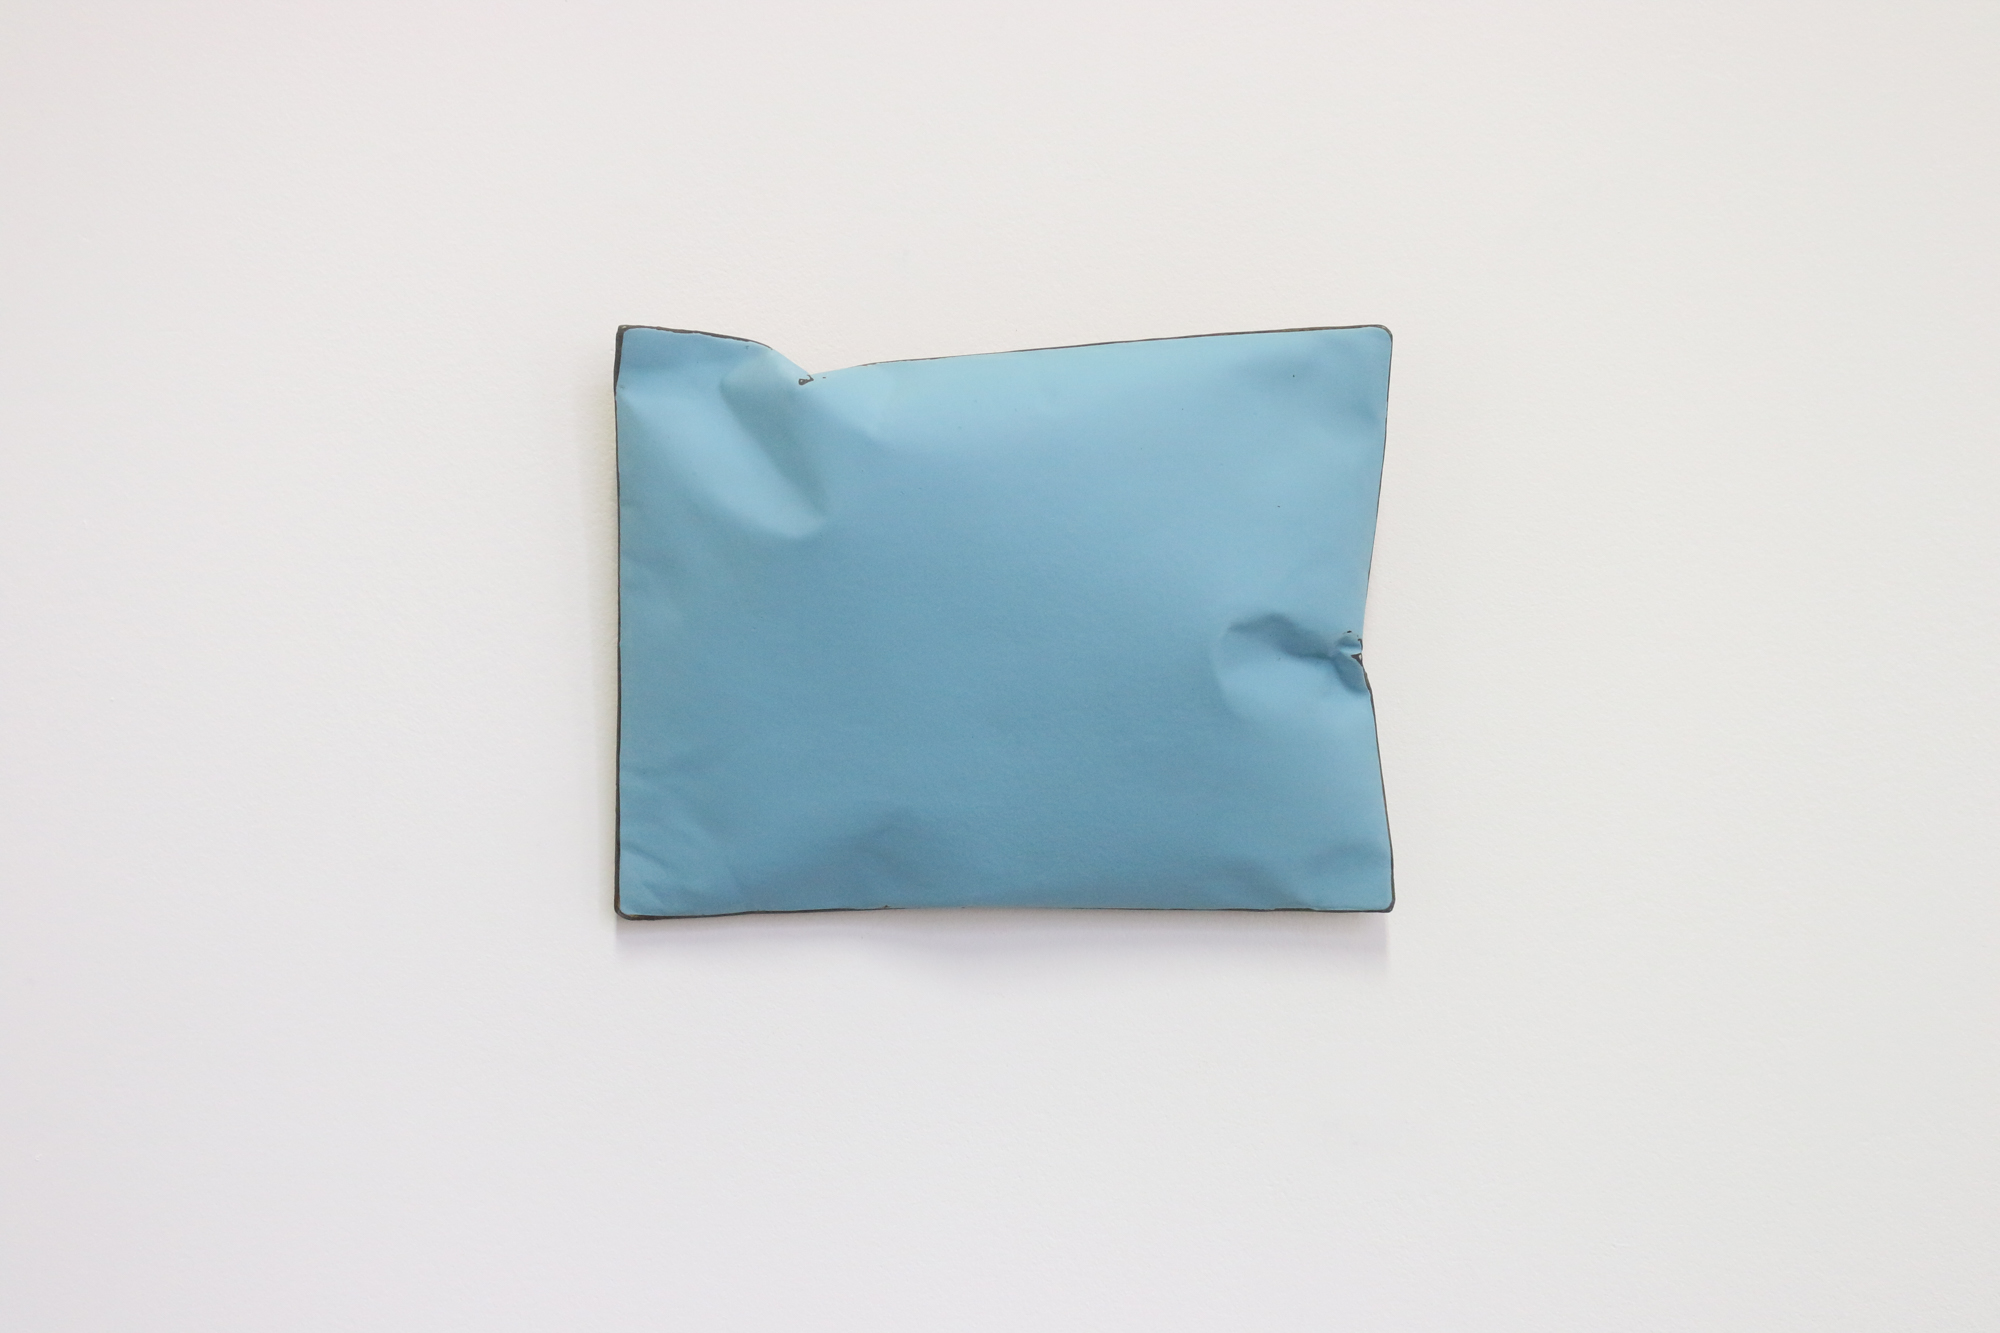 Johan De Wit, Untitled, 2019, Acrylic, Marble, Resin on Paper, 26x20x6 cm - blue, Affinity Art.jpg